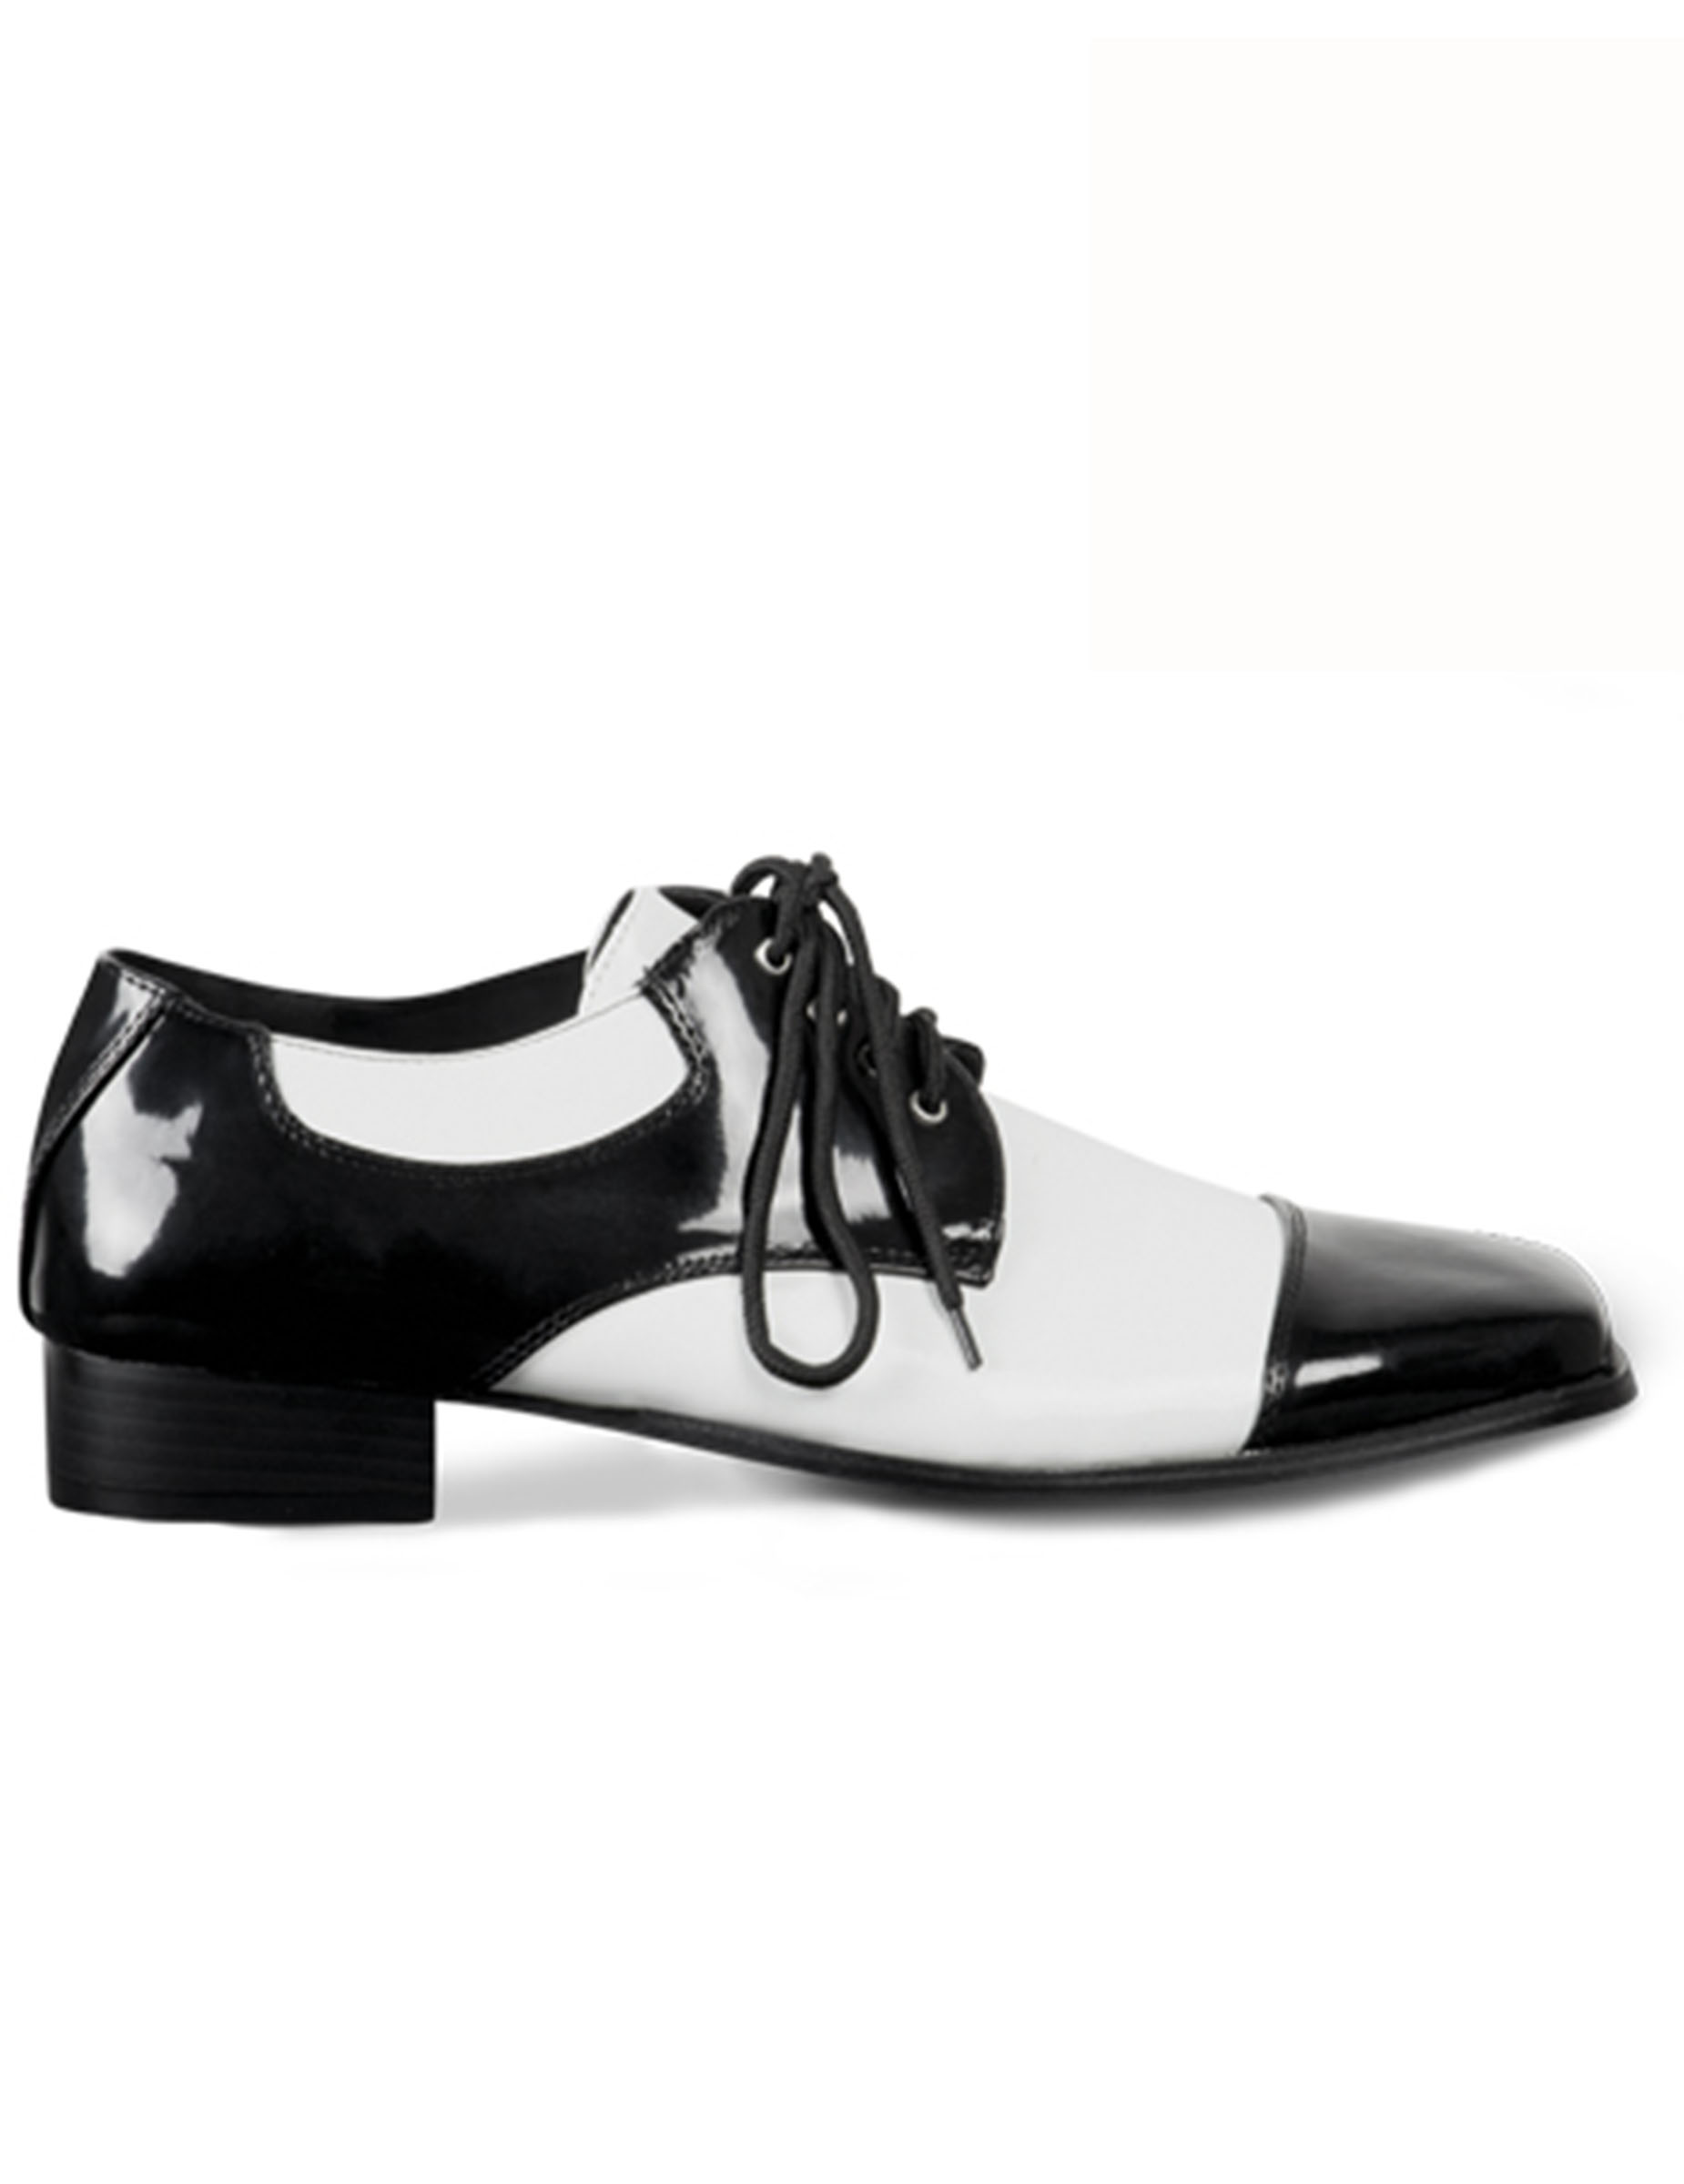 Chaussures Costume De Gangster o2t9rG